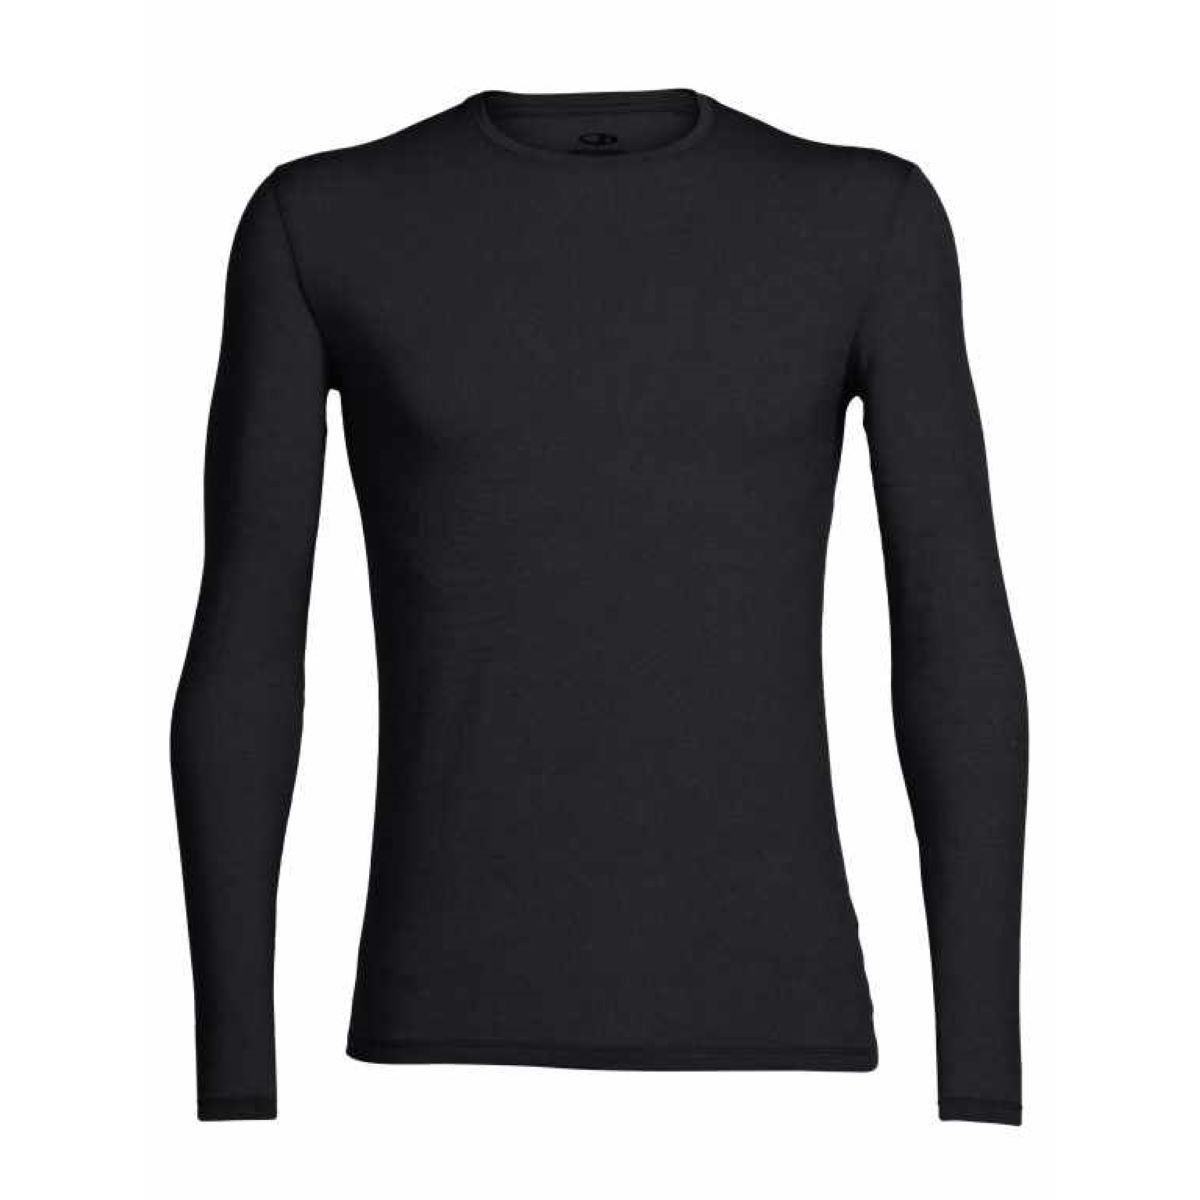 Icebreaker Icebreaker Anatomica Merino Long Sleeve Crewe   Base Layers